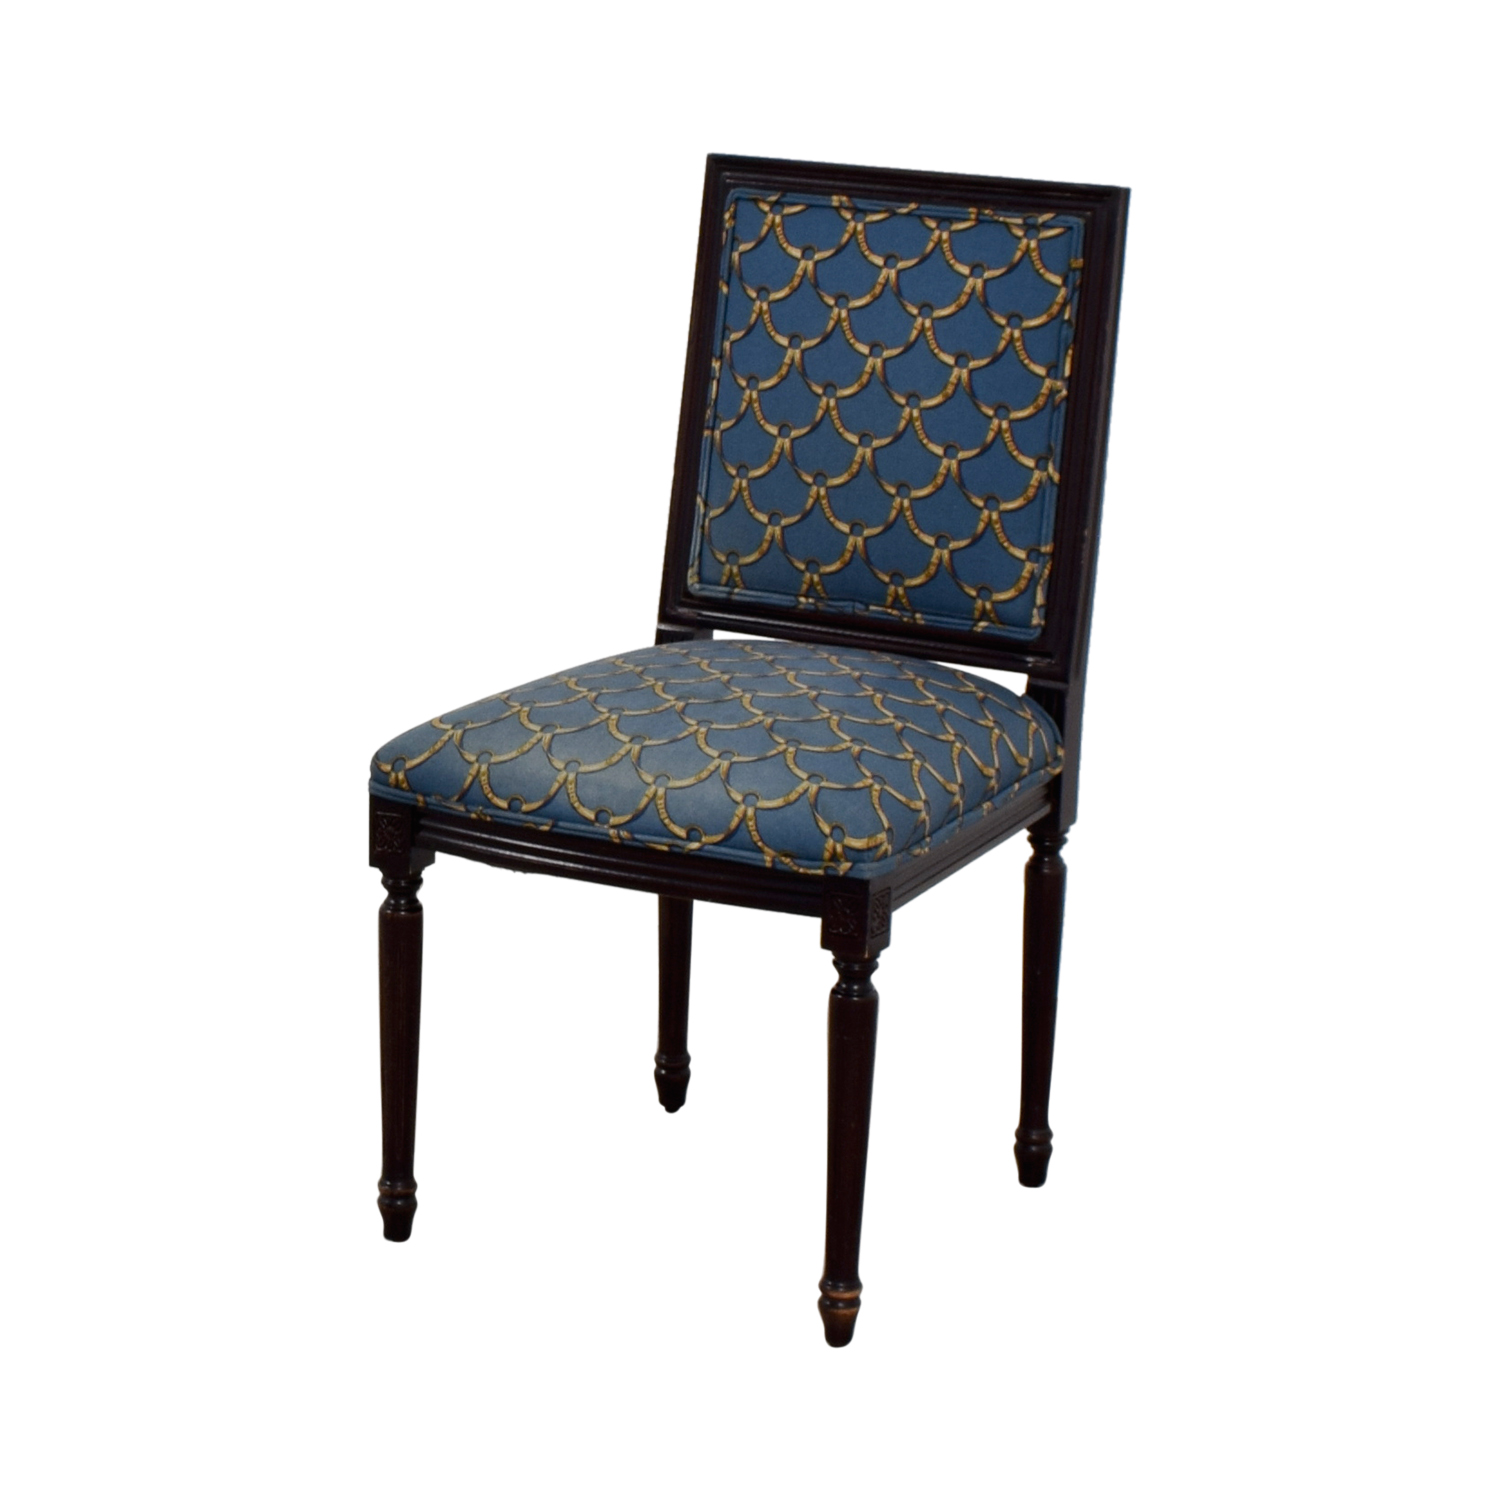 ballard designs upholstered dining chairs navy chair covers wedding 88 off blue and gold